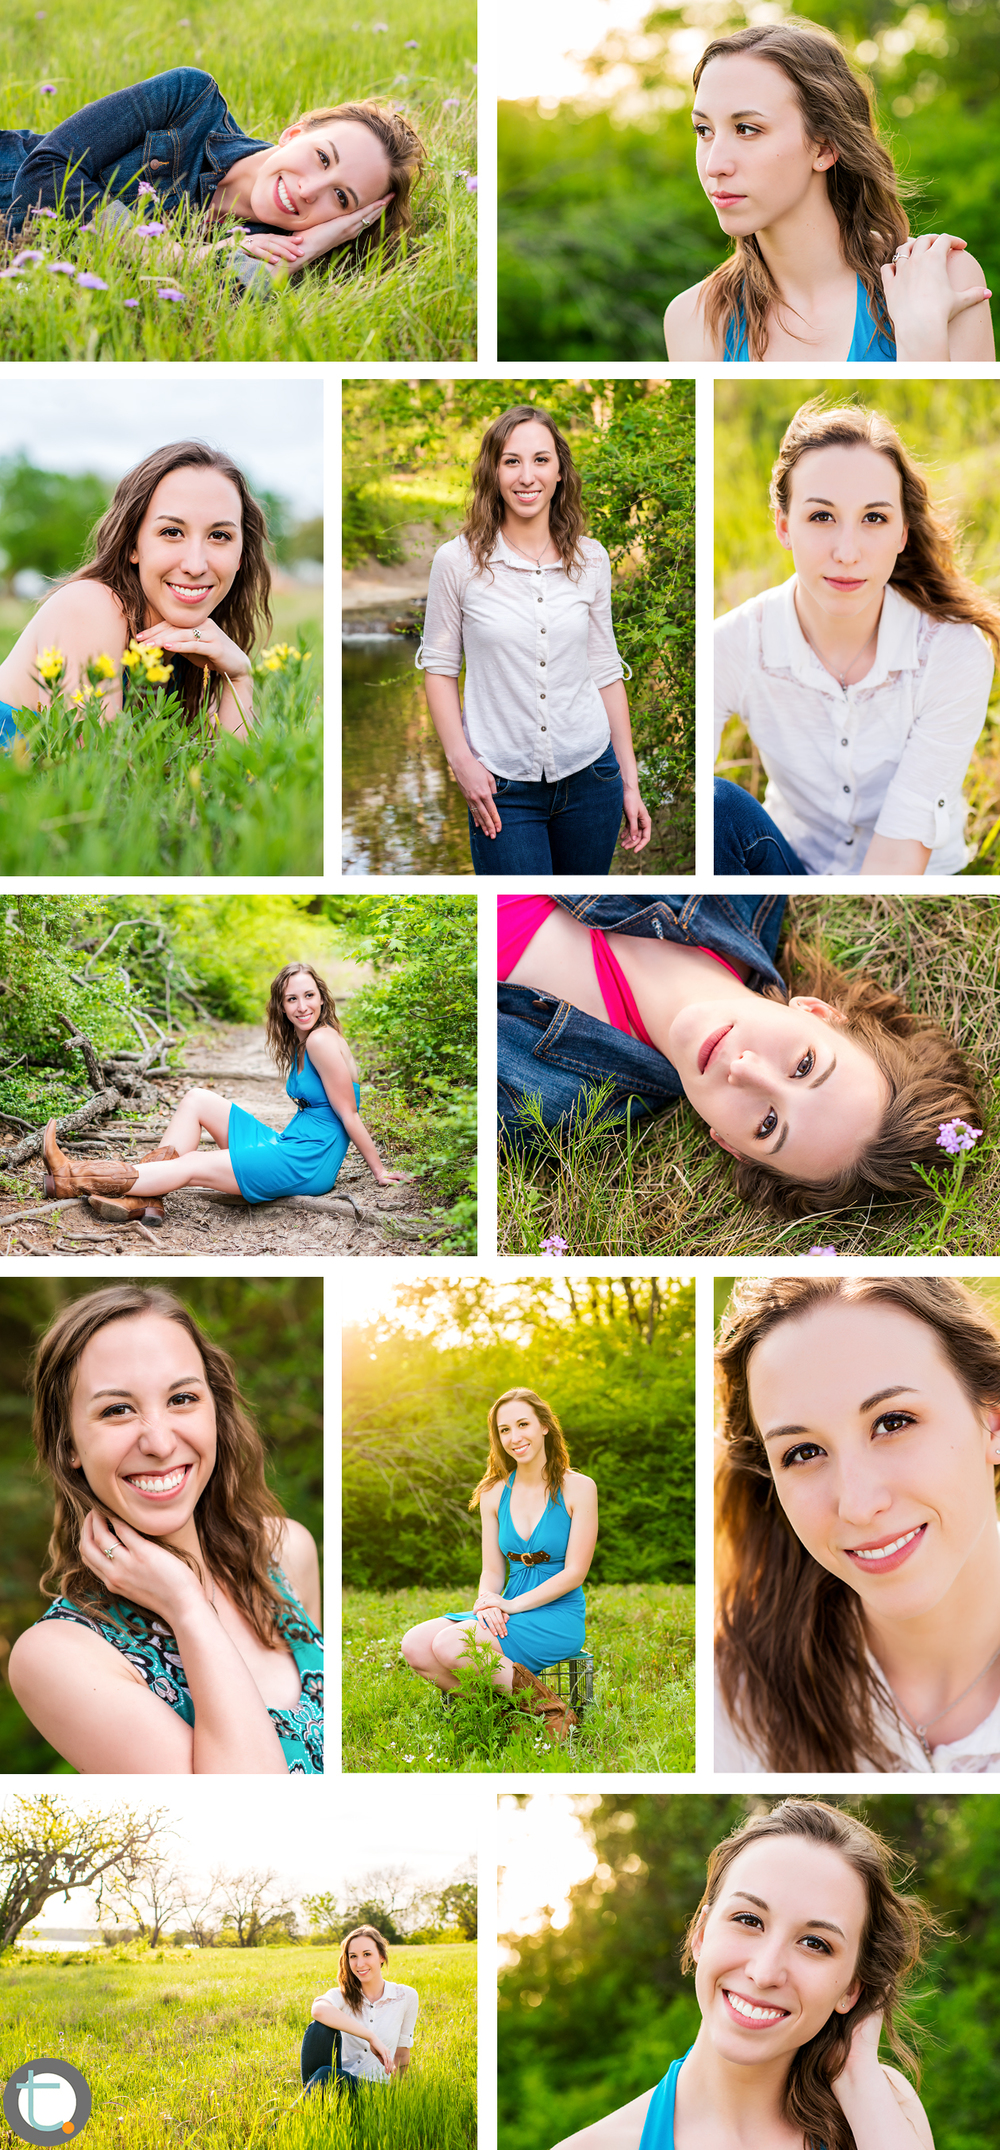 highschool_senior_classof2014_field_portraits_spring_tracyallynphotography_dallas_brianna